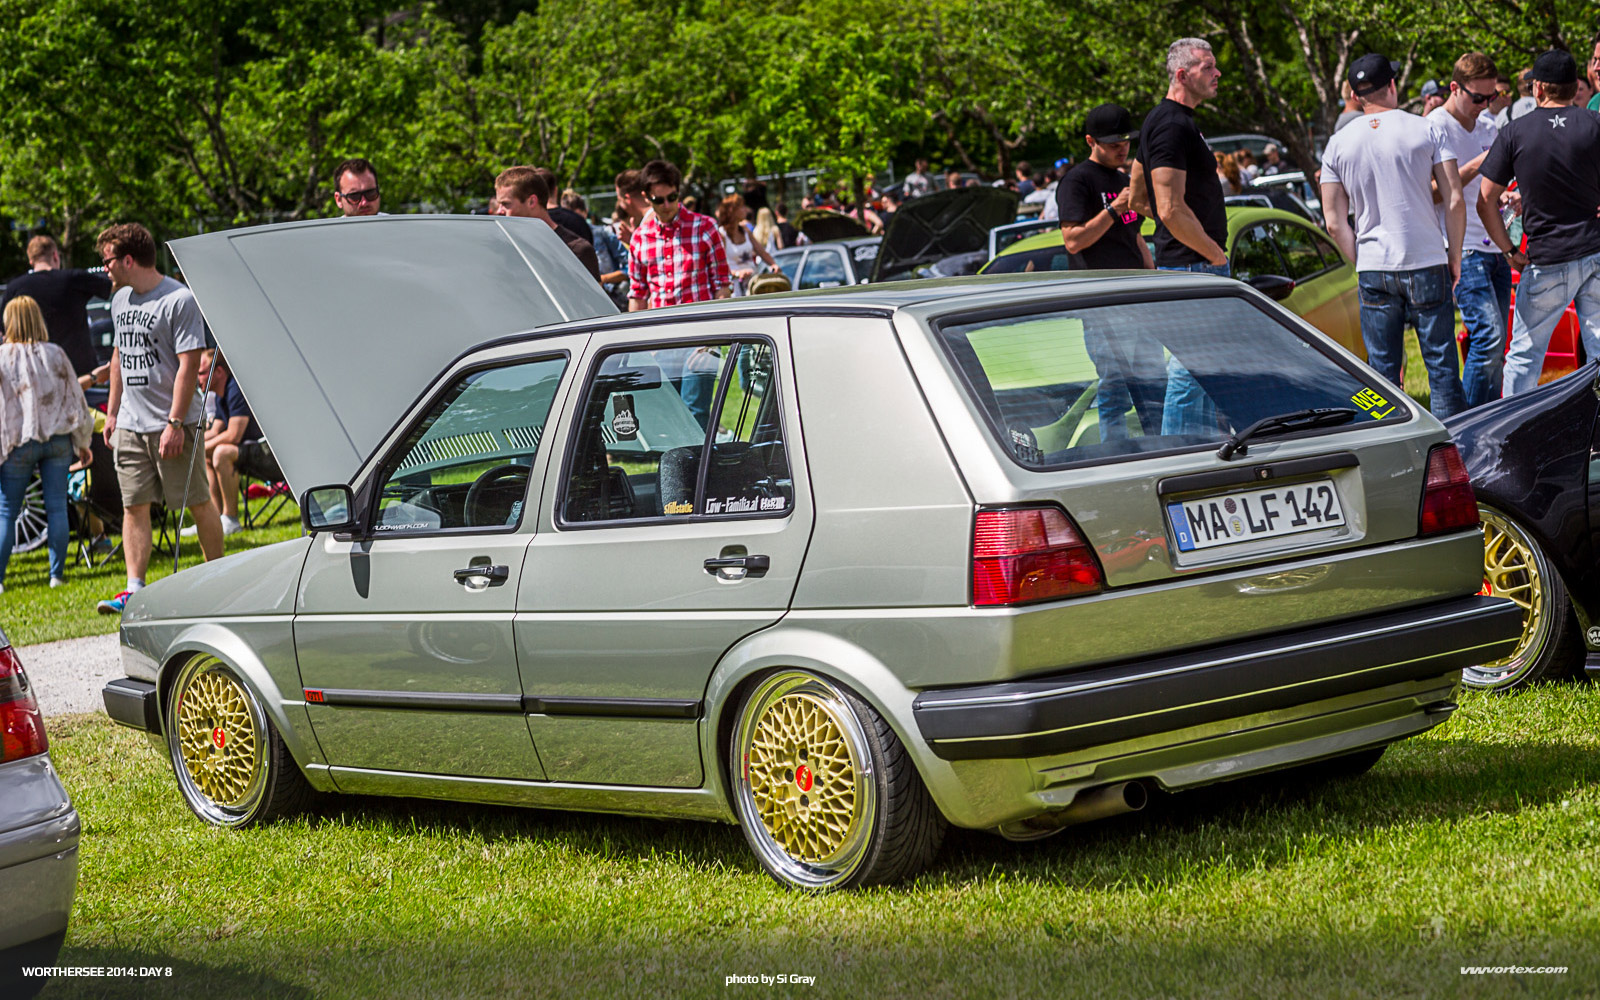 2014-Worthersee-Day-8-Si-Gray-1096